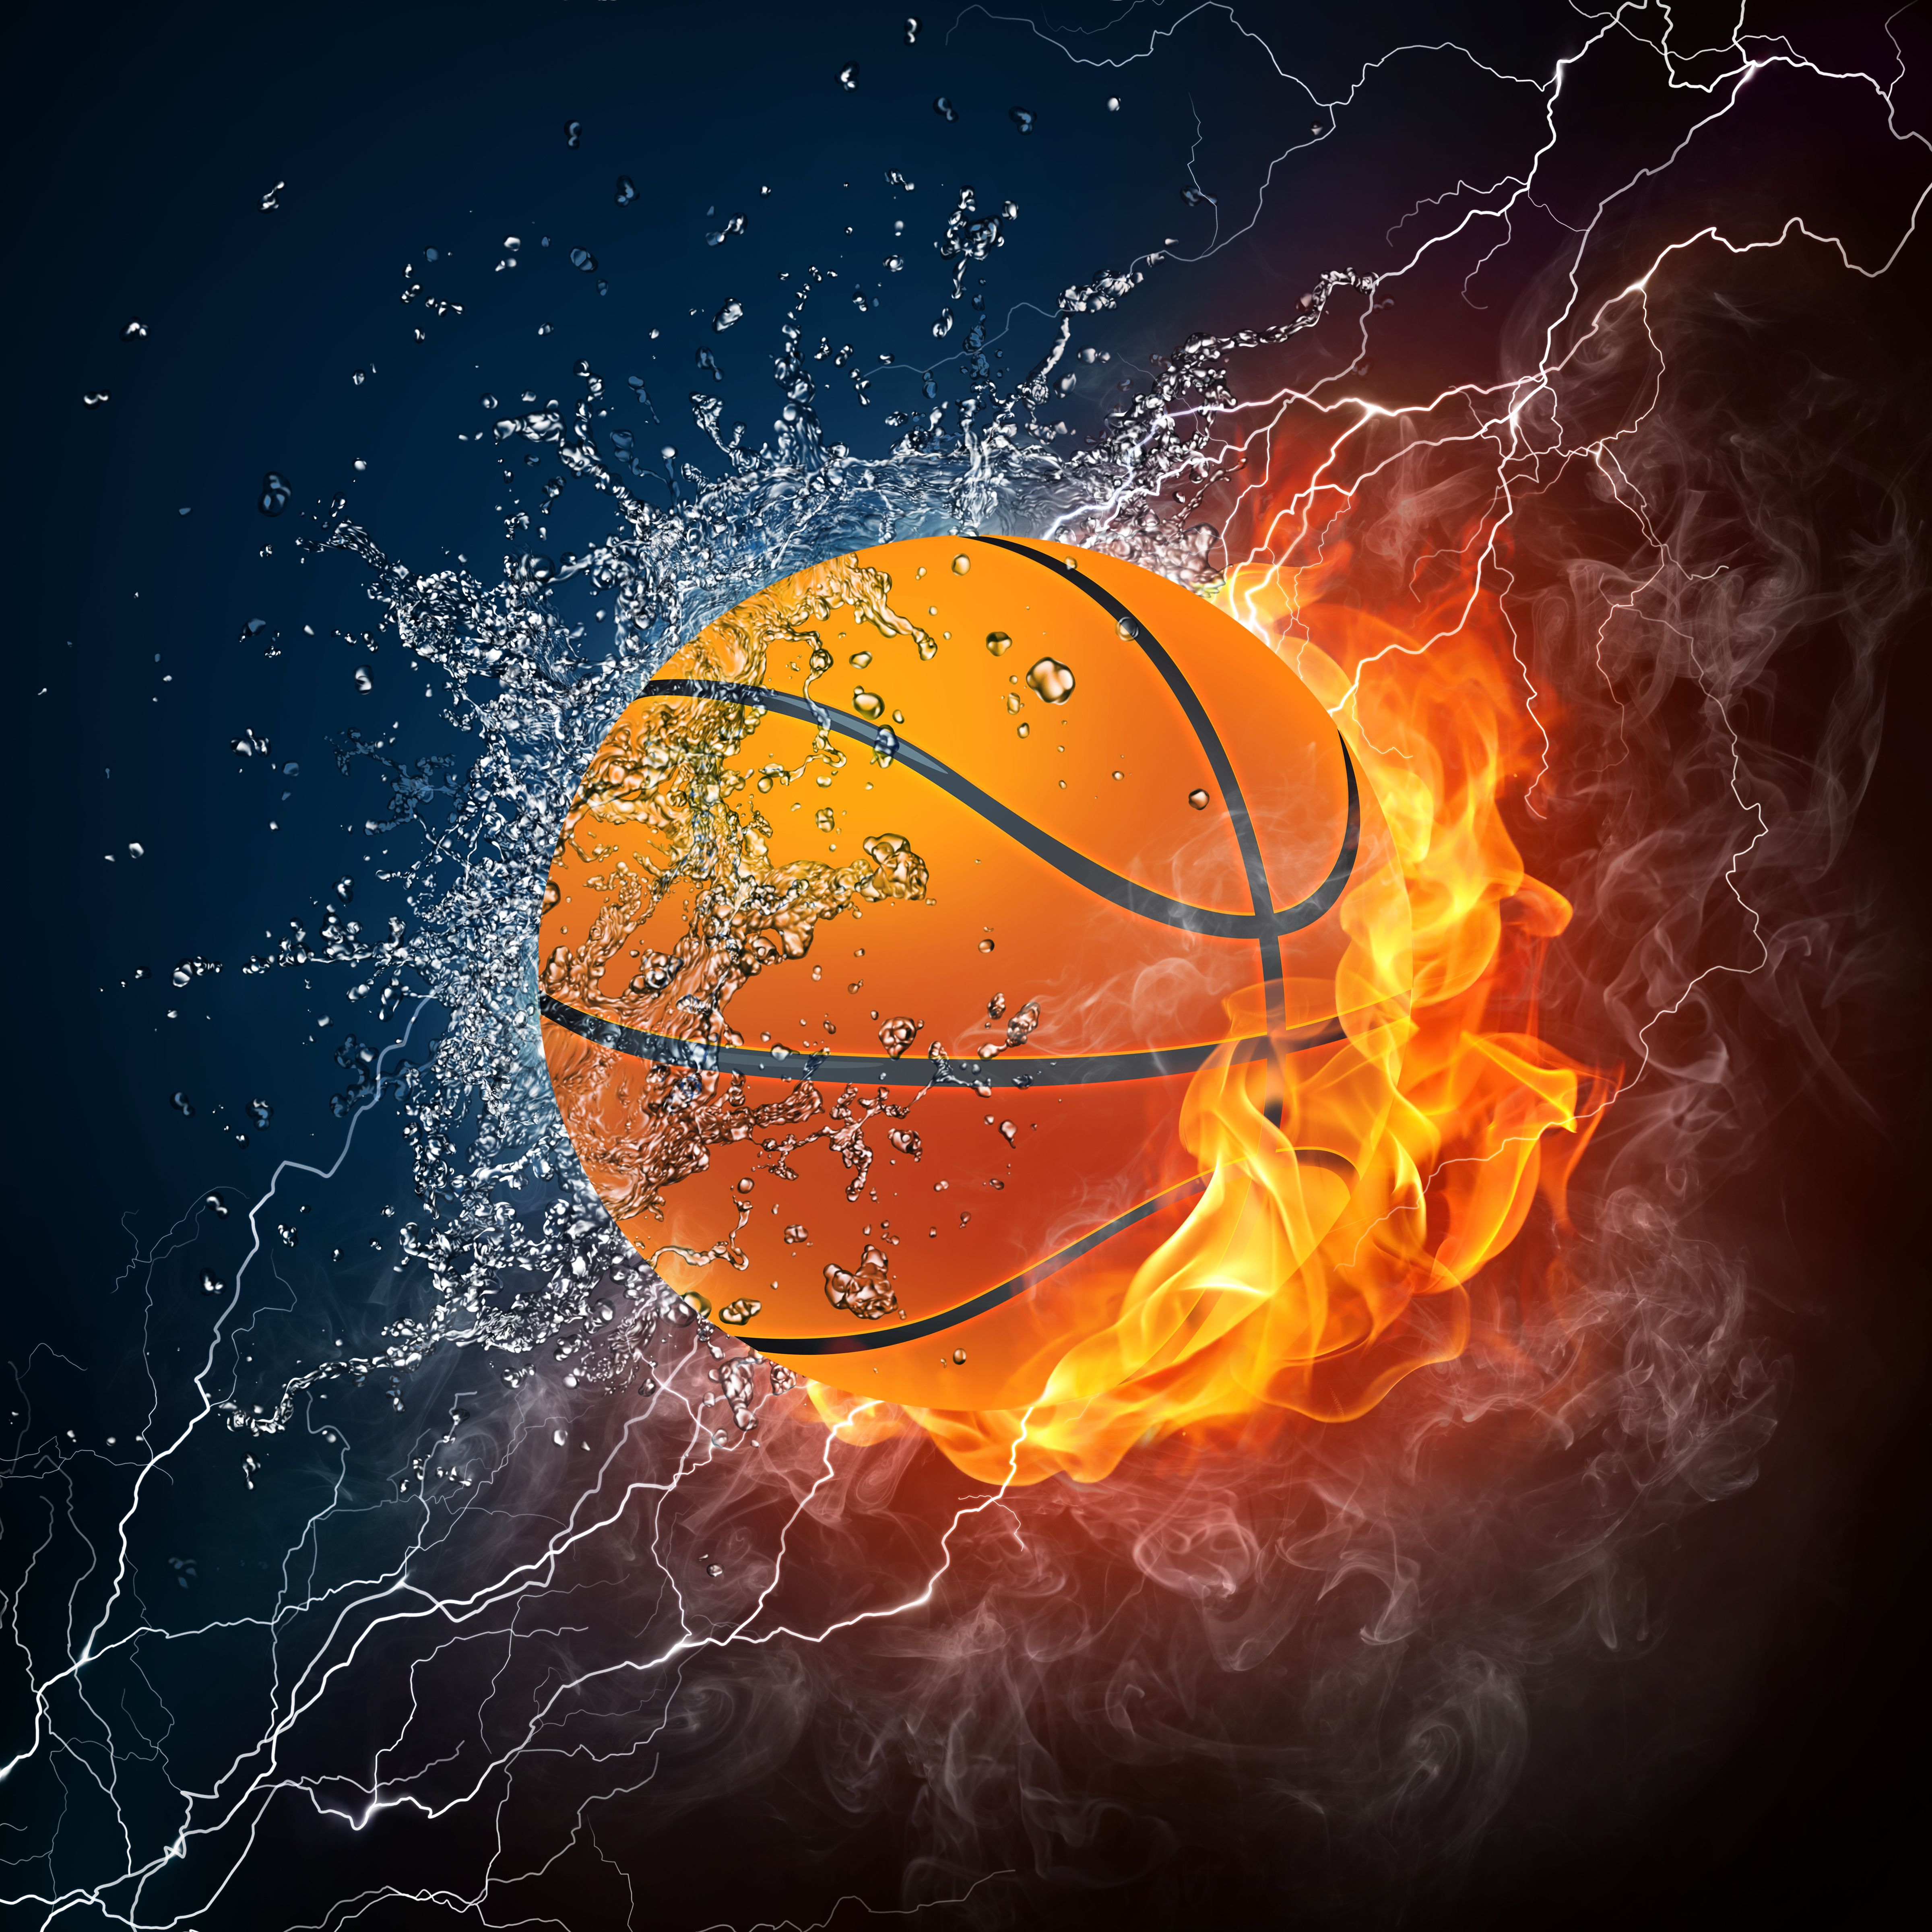 Basketball Ball Basketball Ball In A Fire Hd Wallpaper In High Defination